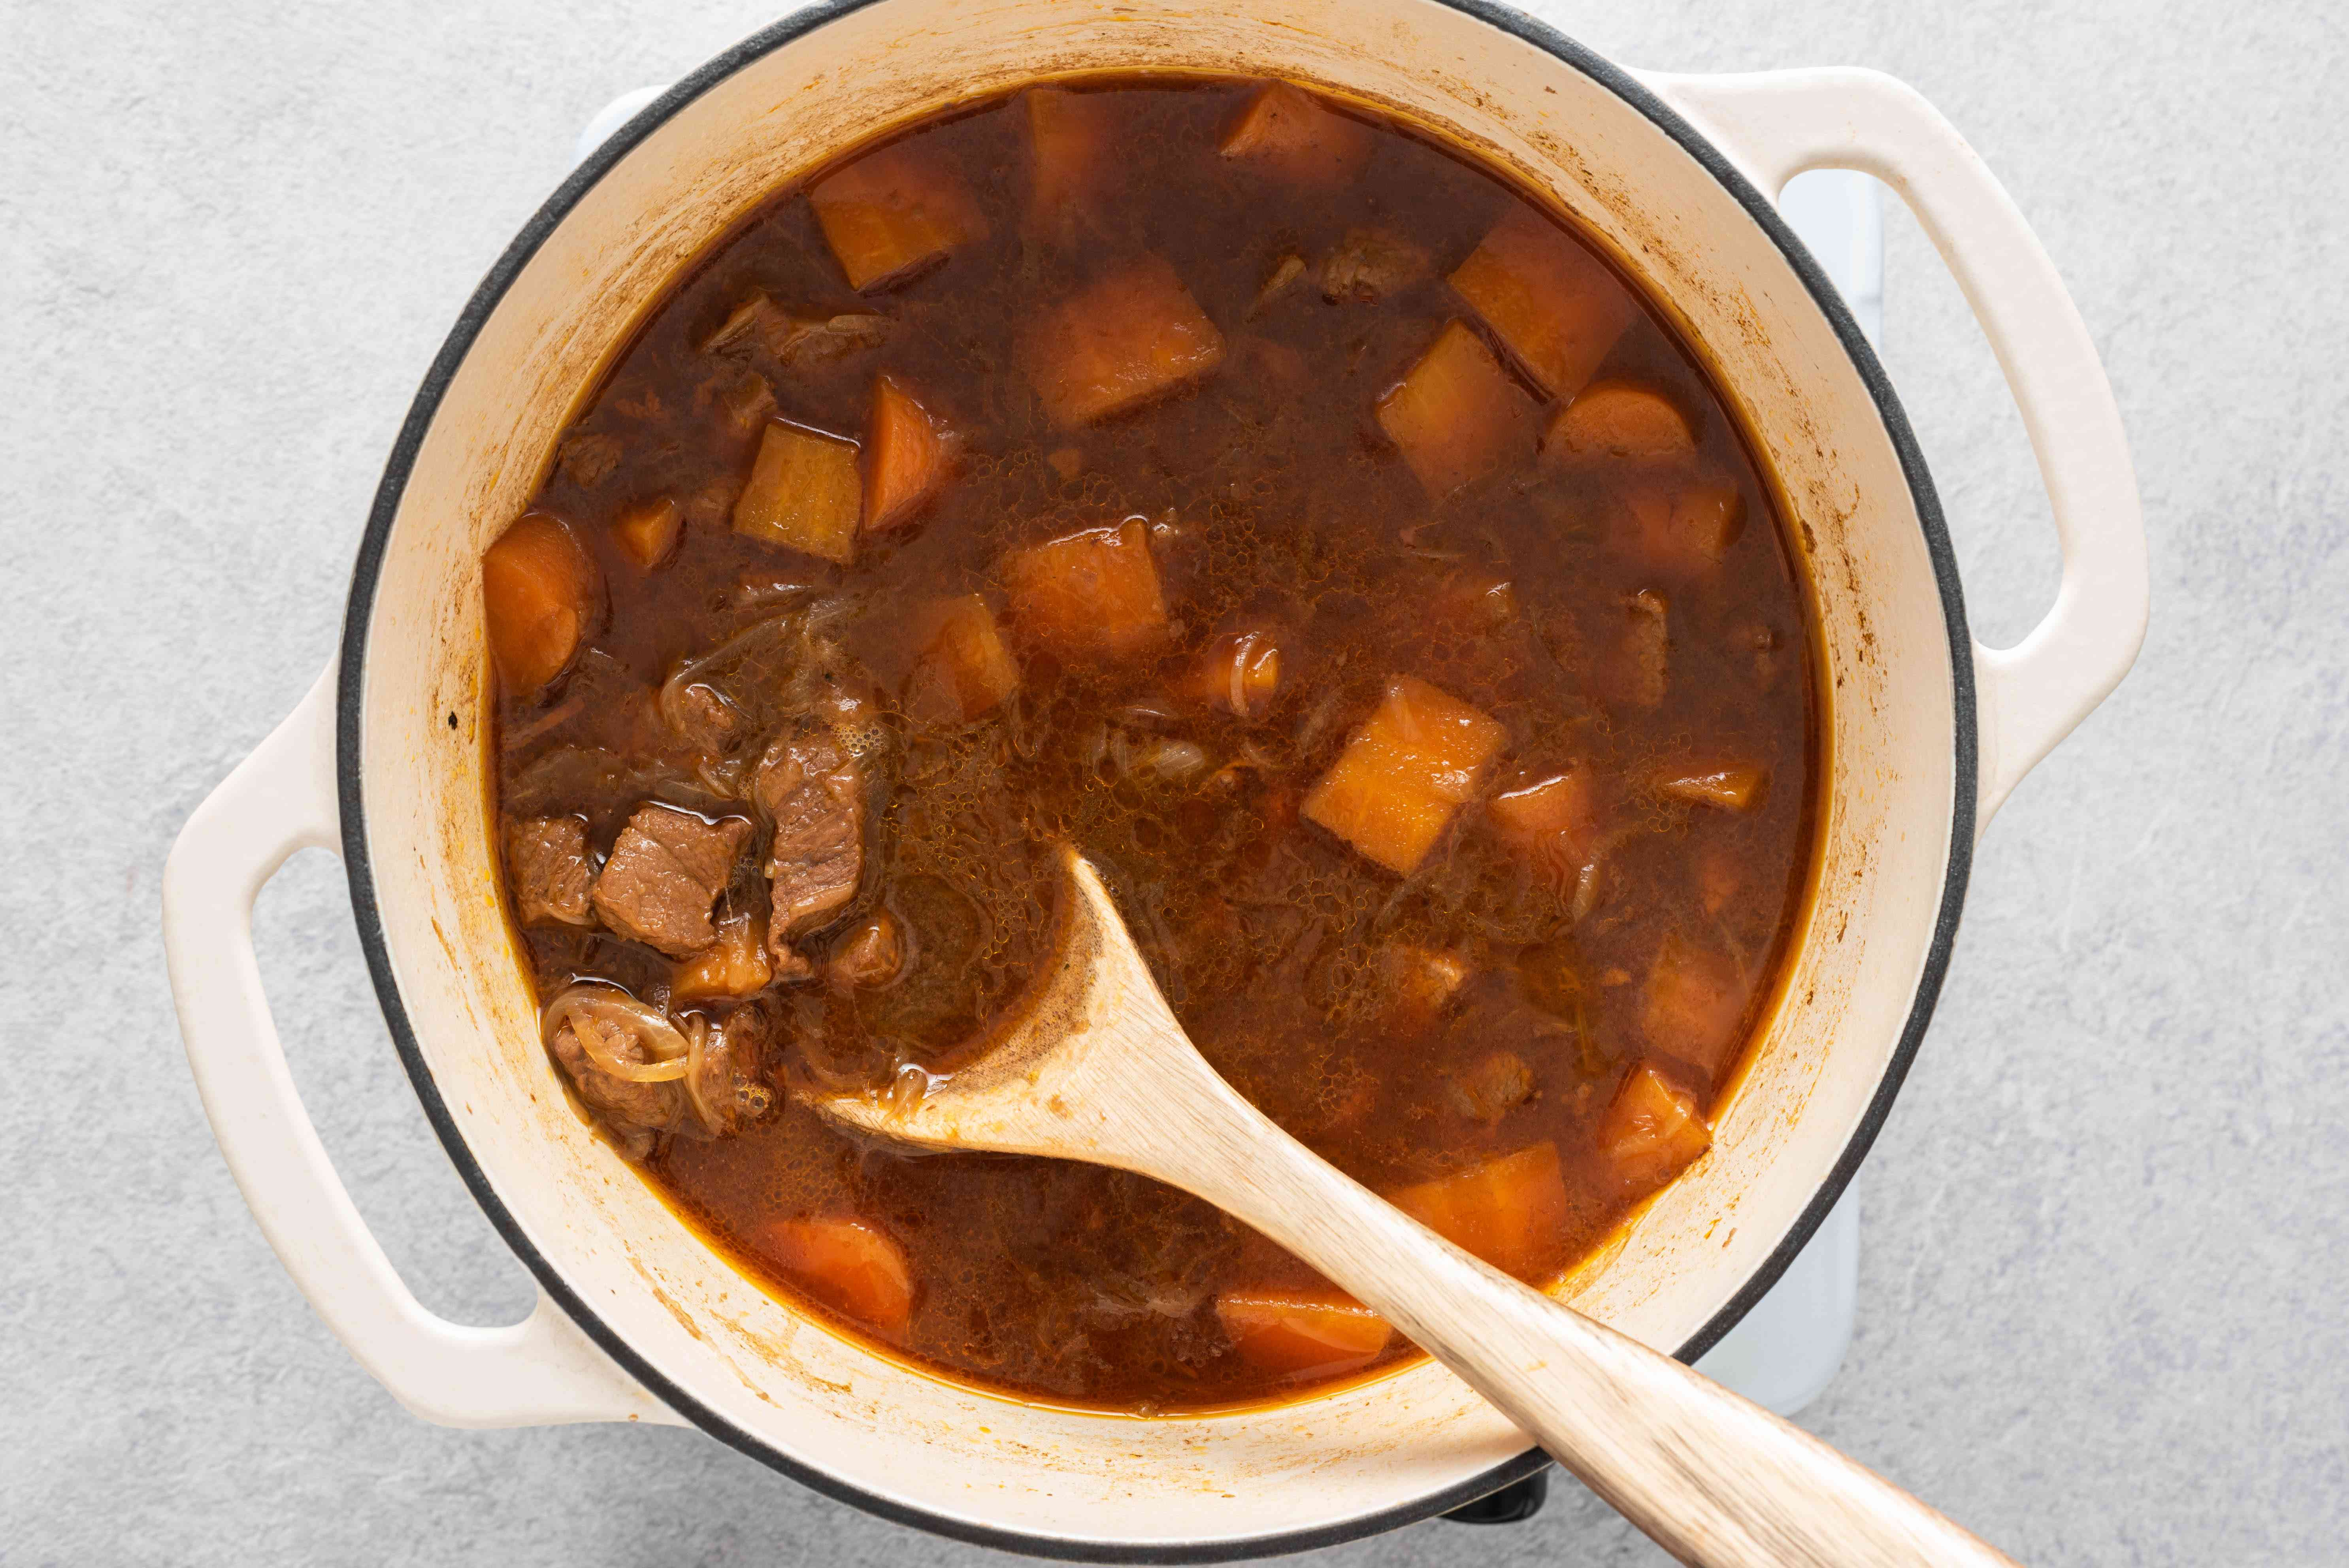 beef and Guinness pie filling cooking in a casserole pot